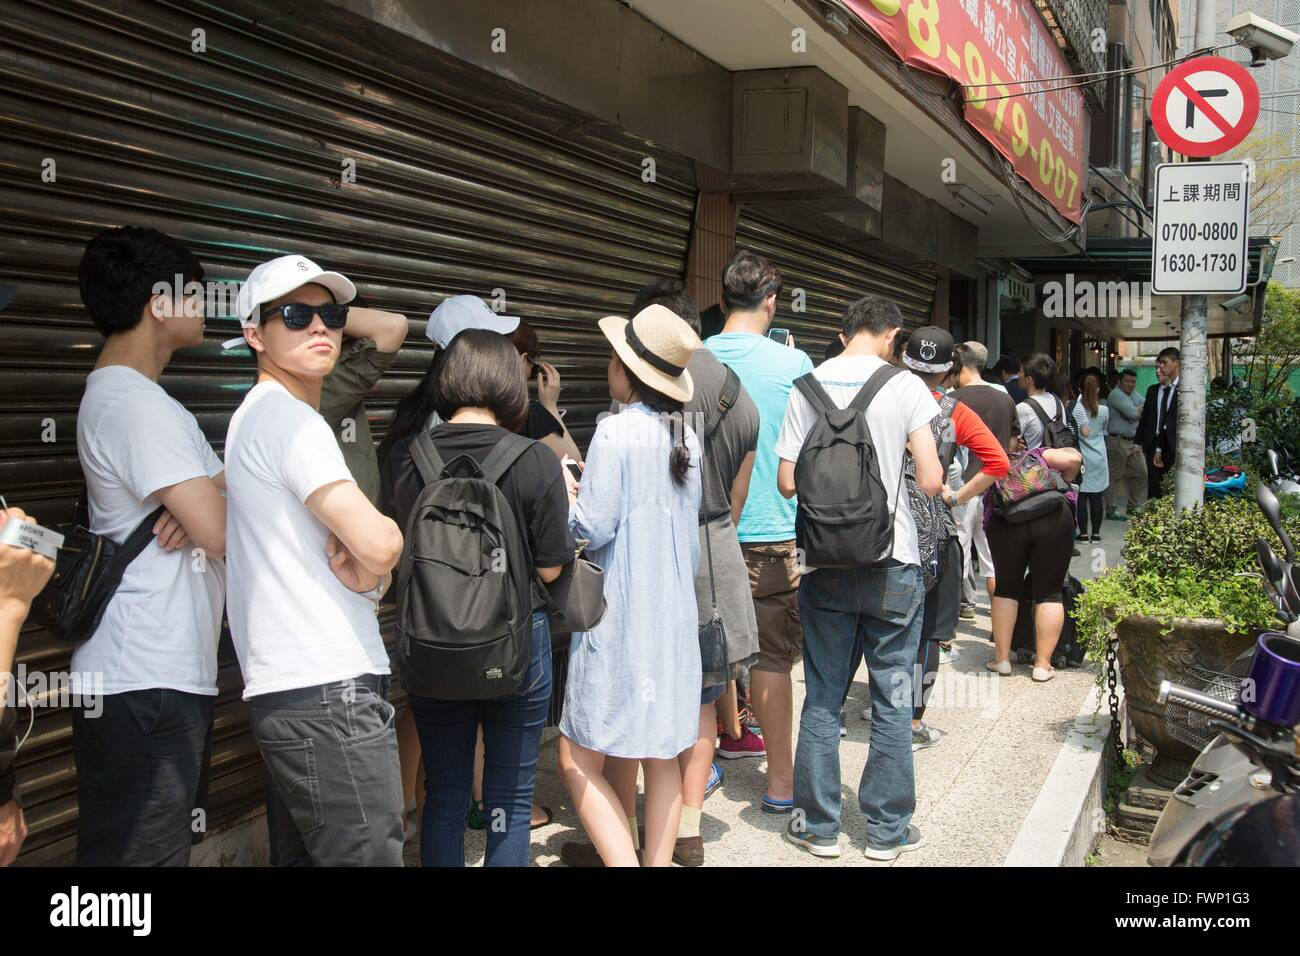 Taipei, Taipei, Taiwan. 7th Apr, 2016. A line forms outside In-N-Out, Taipei. American burger chain In-N-Out hosted - Stock Image